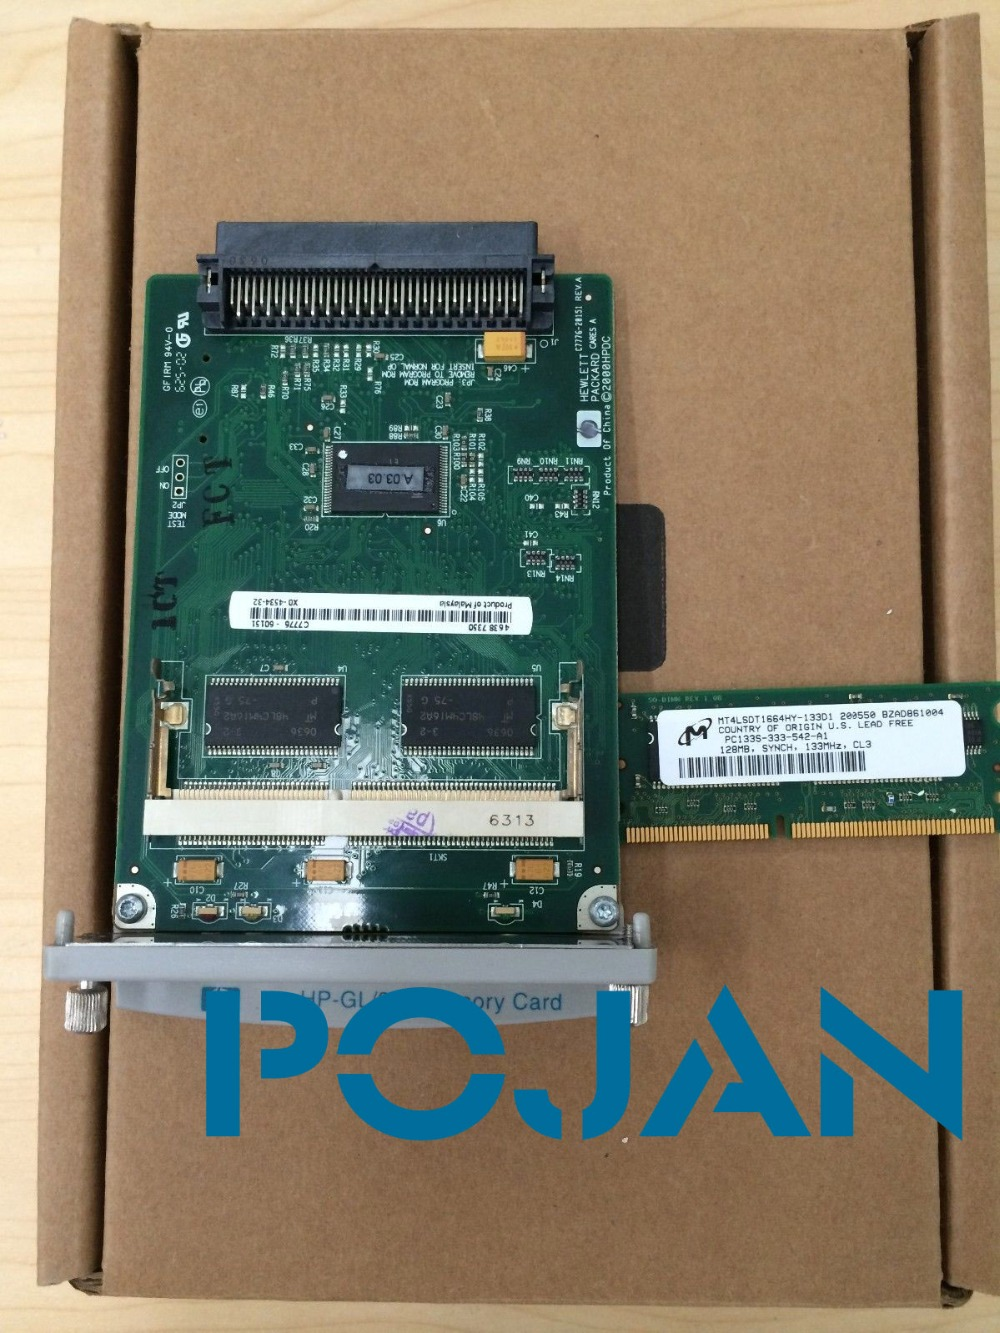 C7772A Designjet 500 plus GL2 Card Formatter Board Card +128M Fixes 05:09 05:10 ink plotter printhead board printer parts абажур 7772 2 matcream е27 40вт